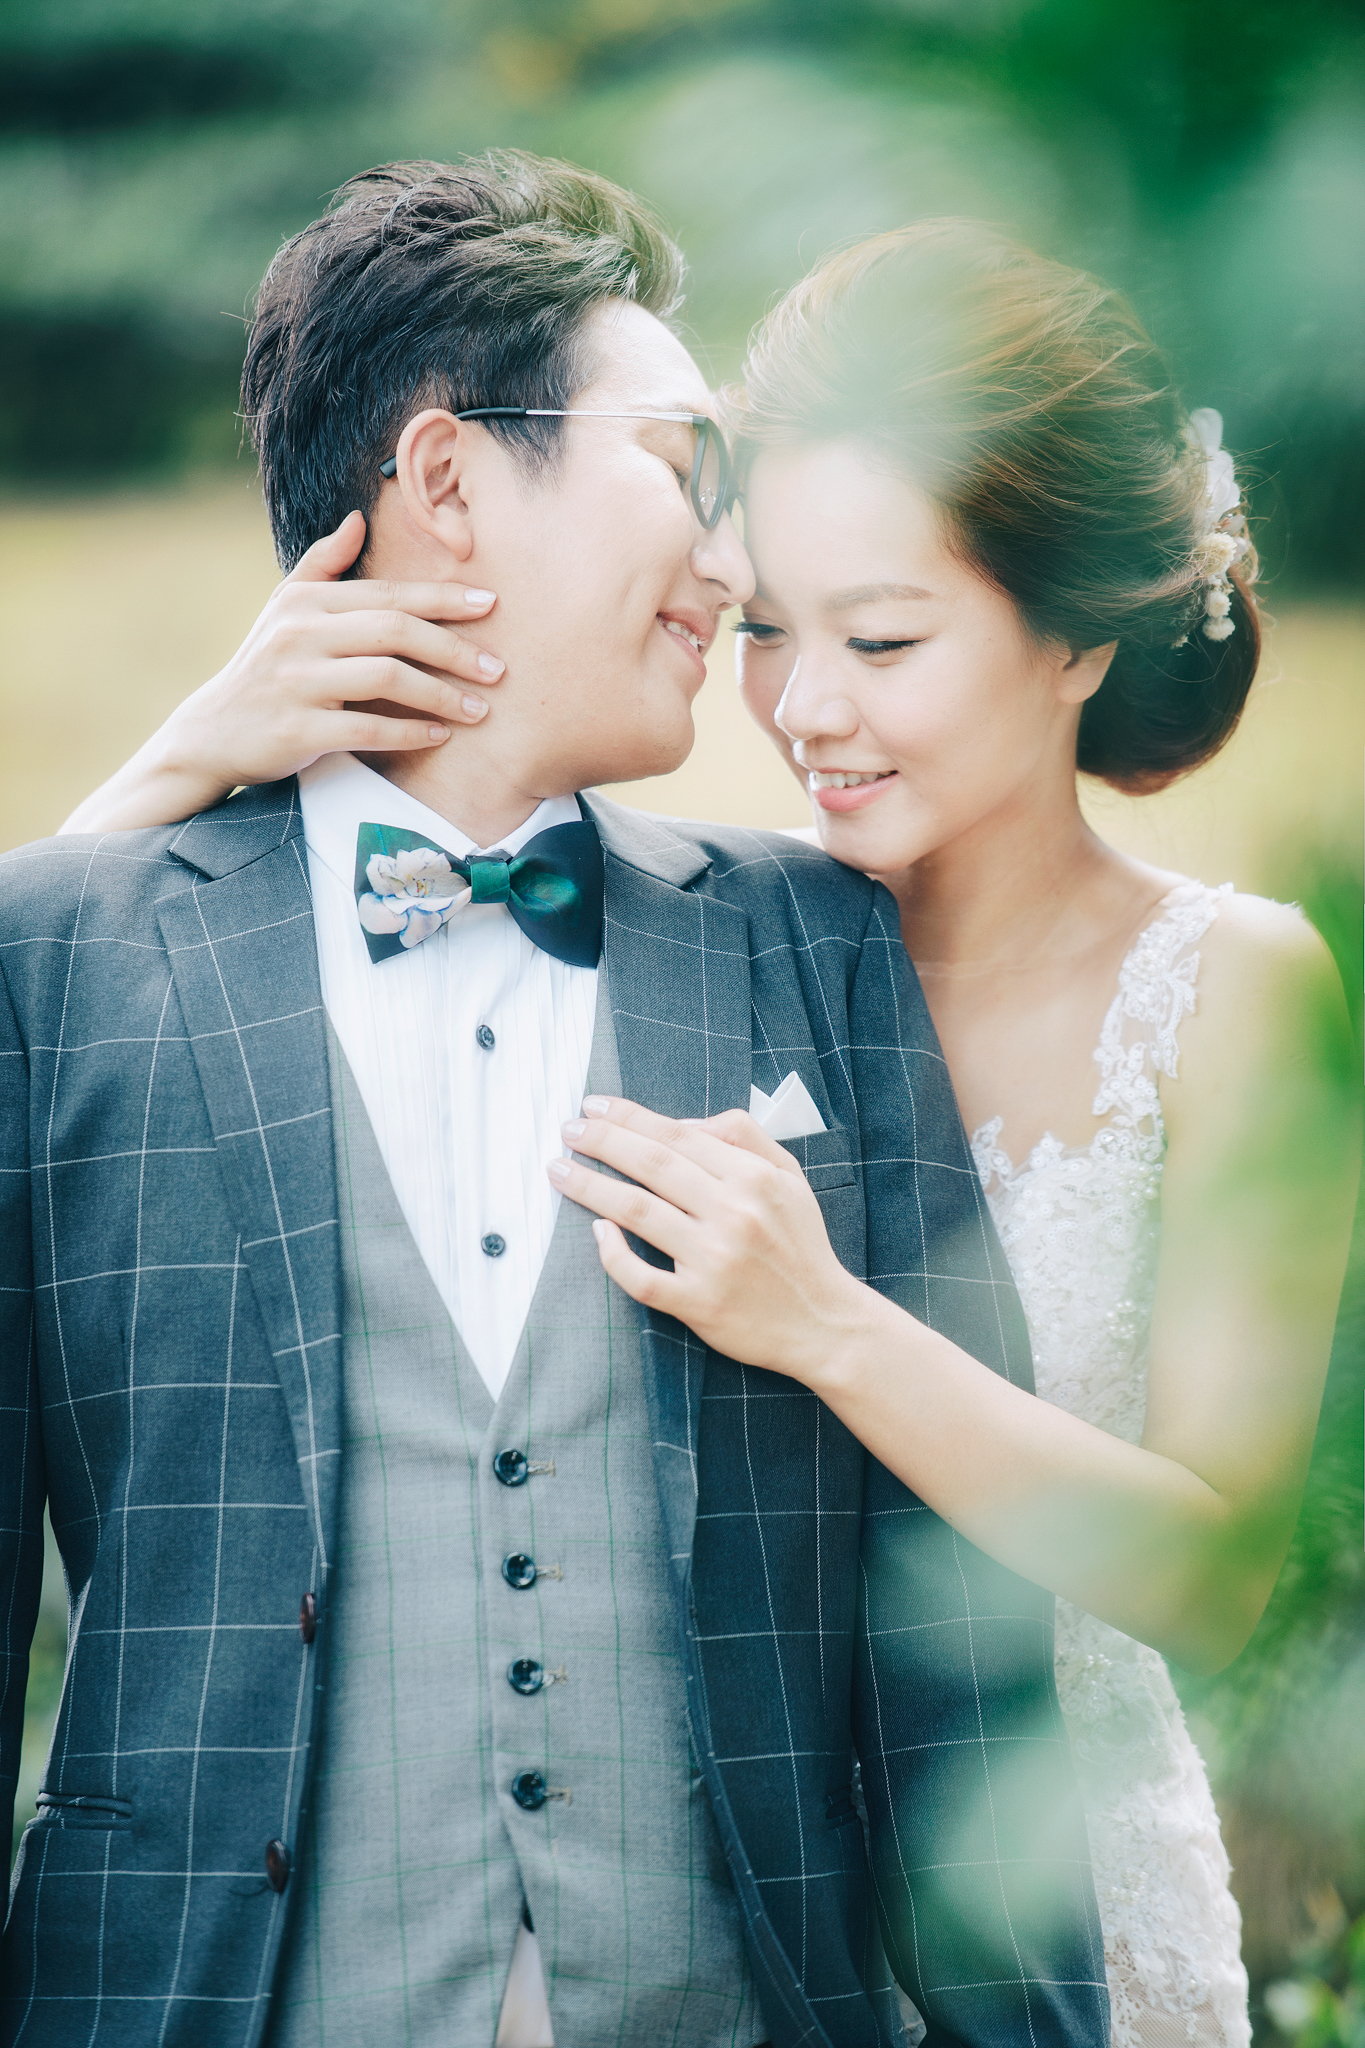 Donfer Photography, EASTERN WEDDING, 自主婚紗, 自助婚紗, 婚紗影像, 熊空茶園, 長曝婚紗, 藝術婚紗